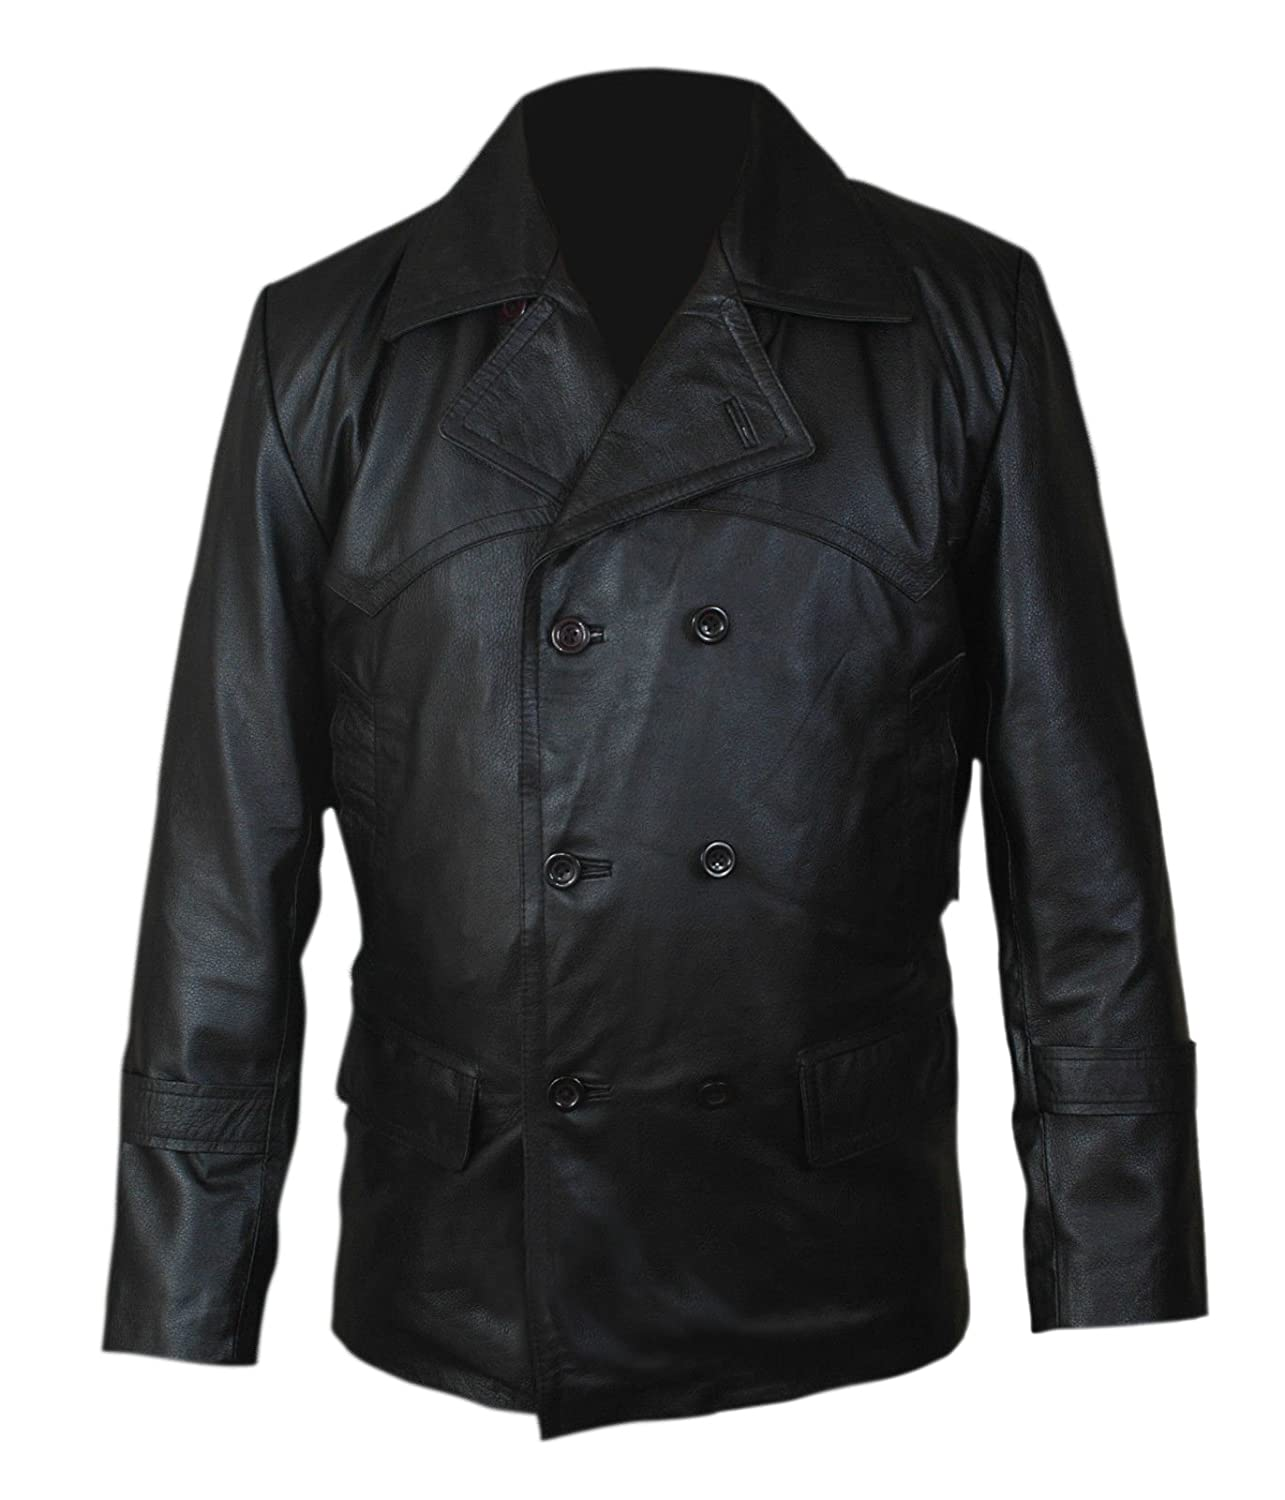 Mens Leather Rrench Jacket - Dr. Who Black Leather Jacket U Boat Inspired by Christopher Eccleston